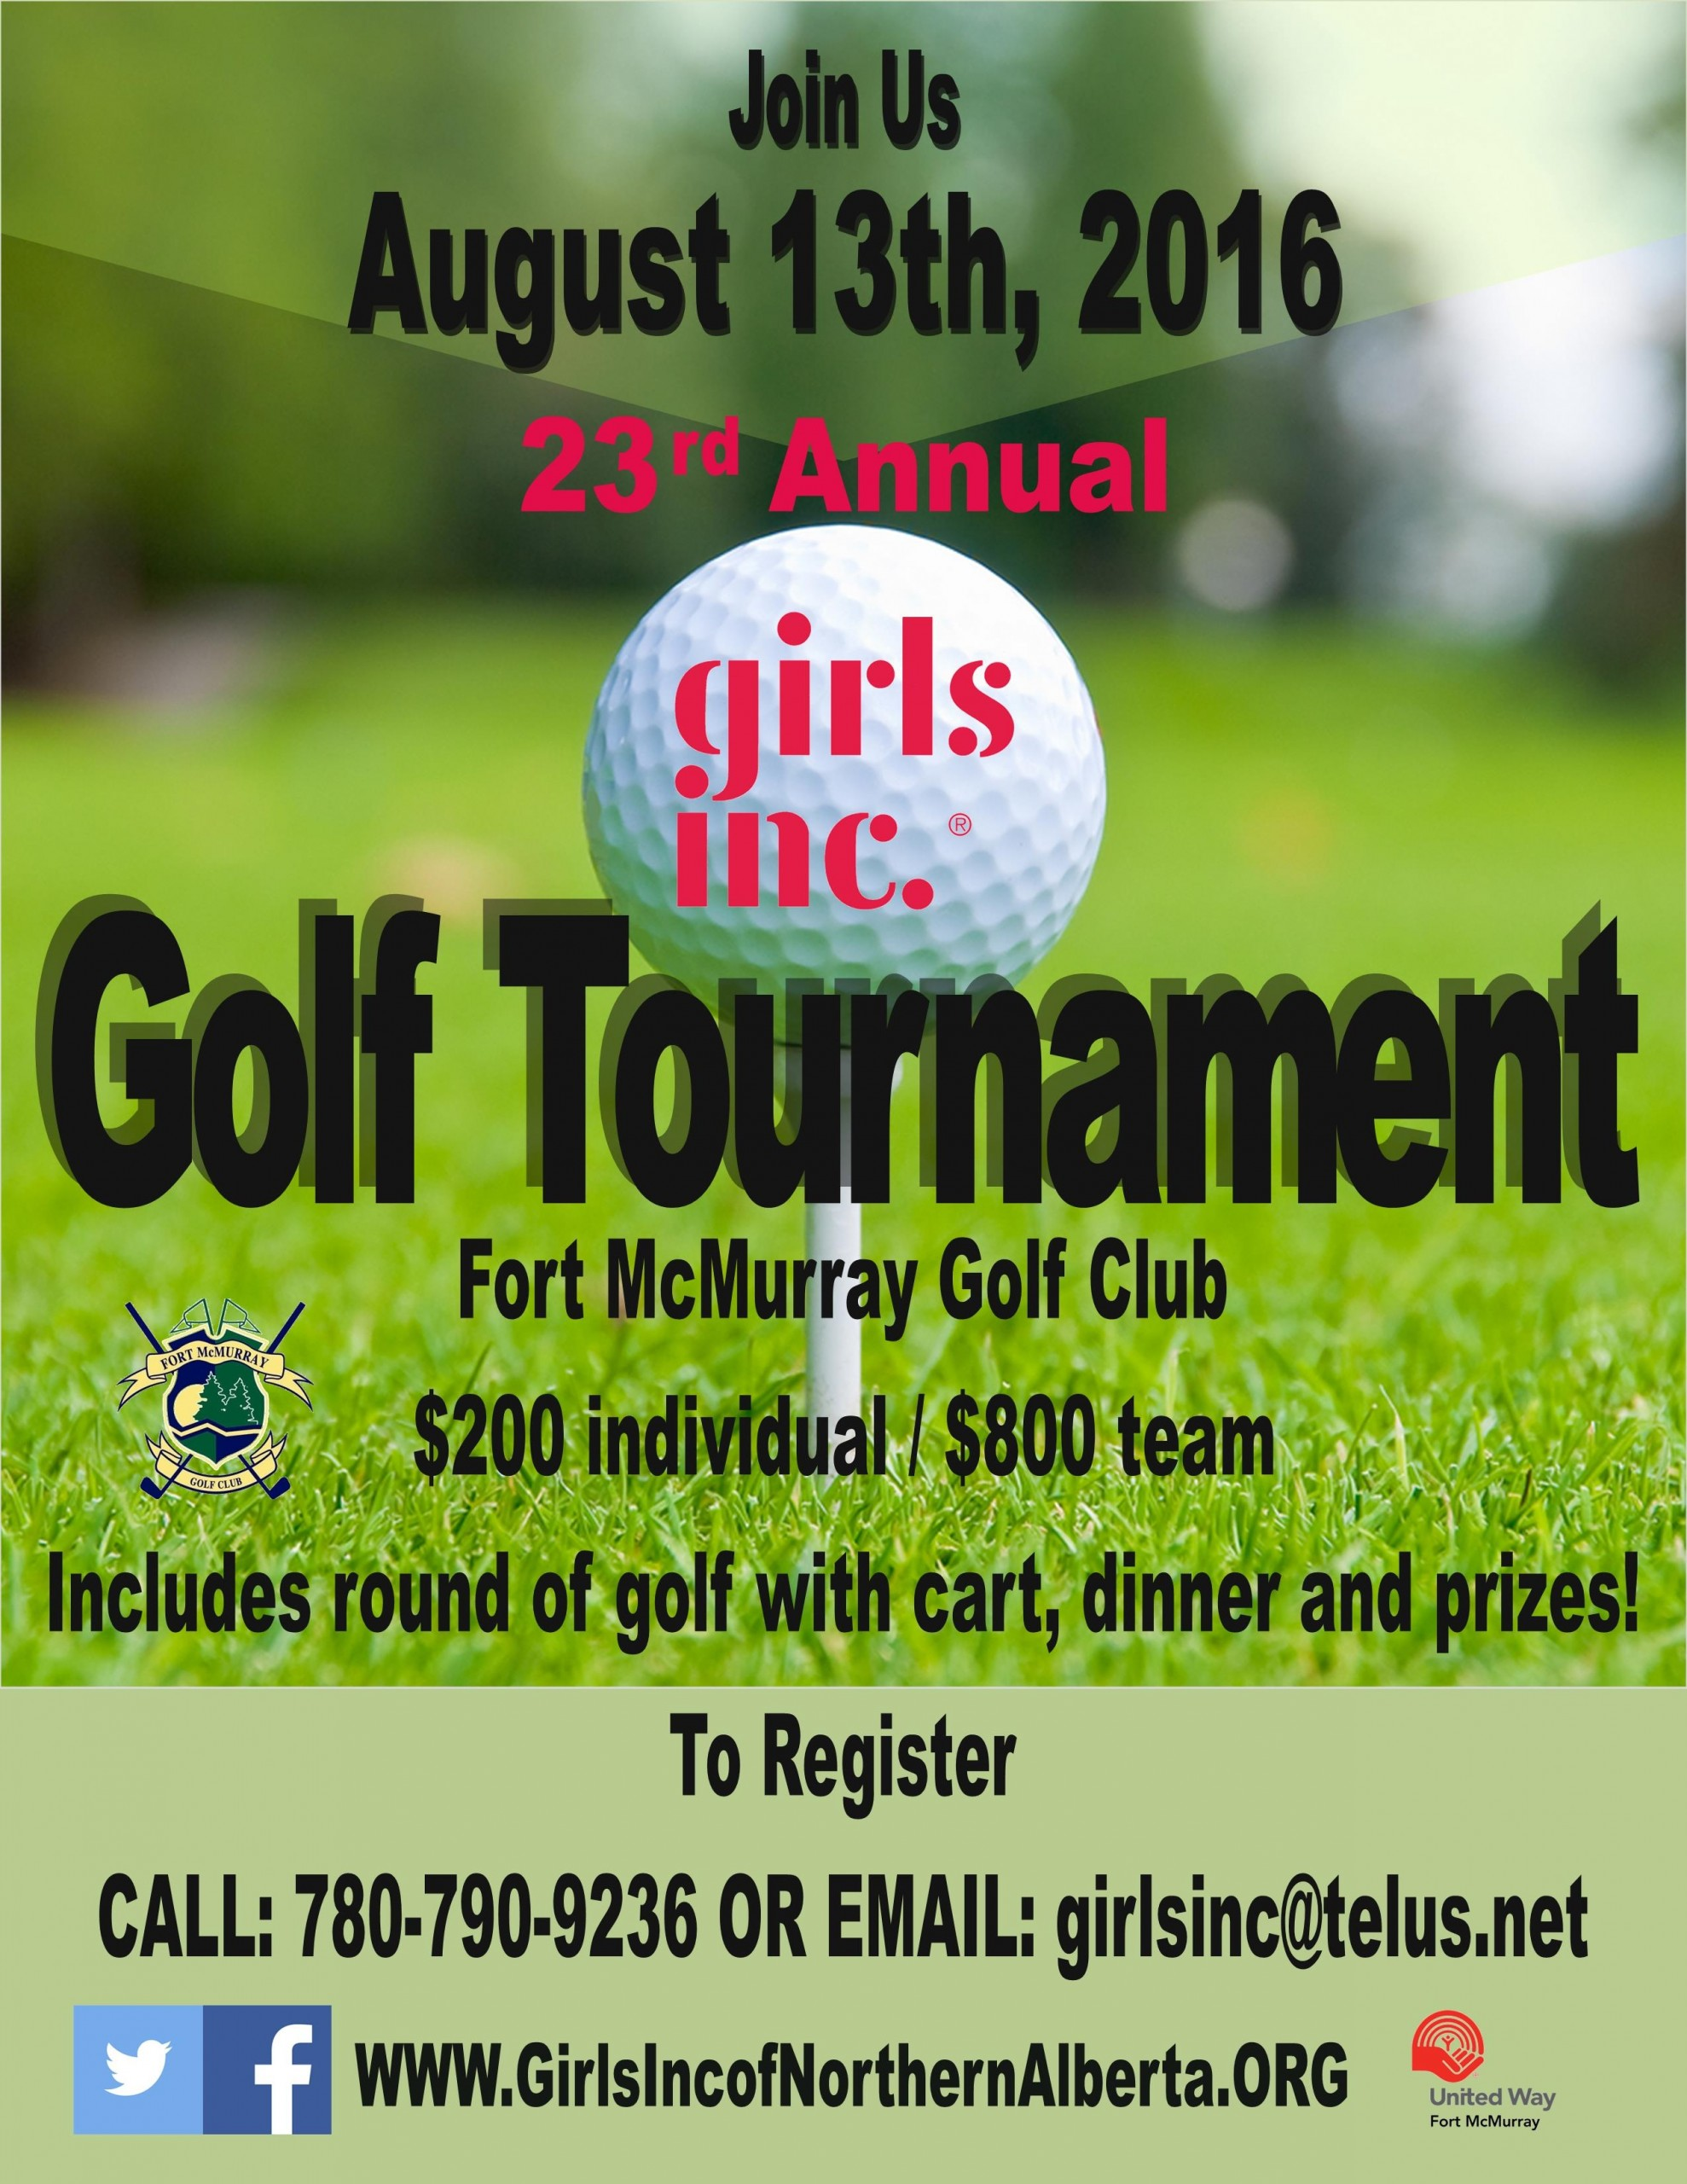 Girls Inc.'s 23 Annual Golf Tournament going ahead